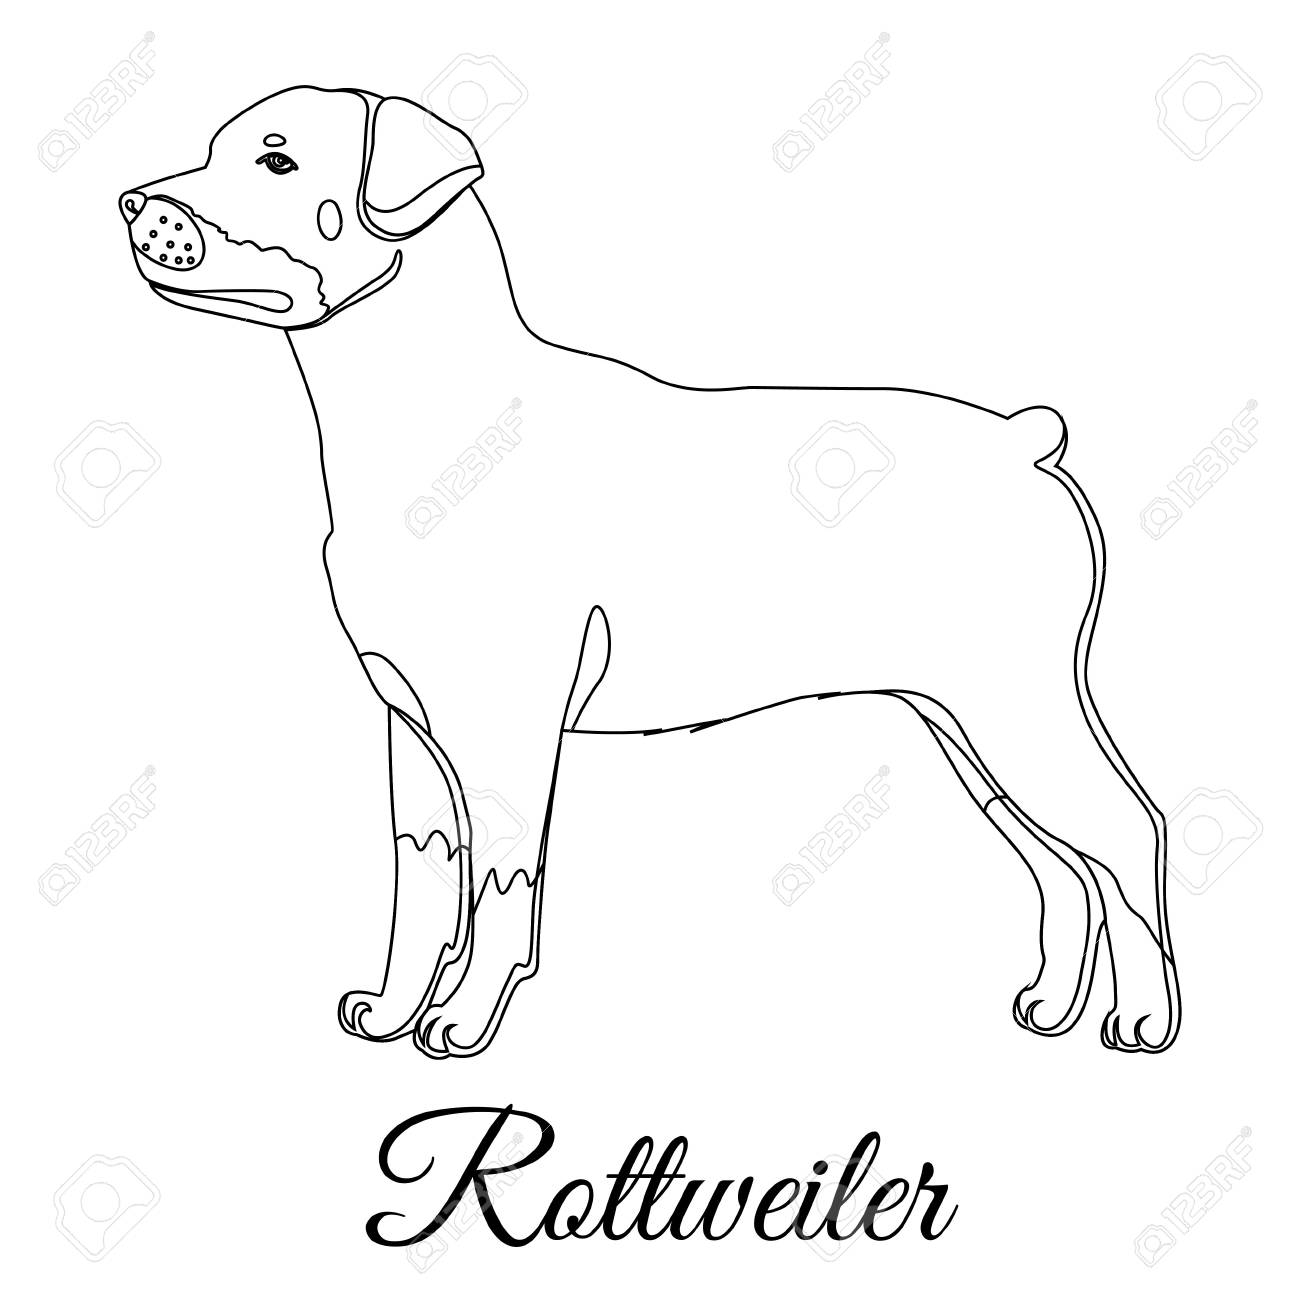 Rottweiler Drawing At Getdrawings